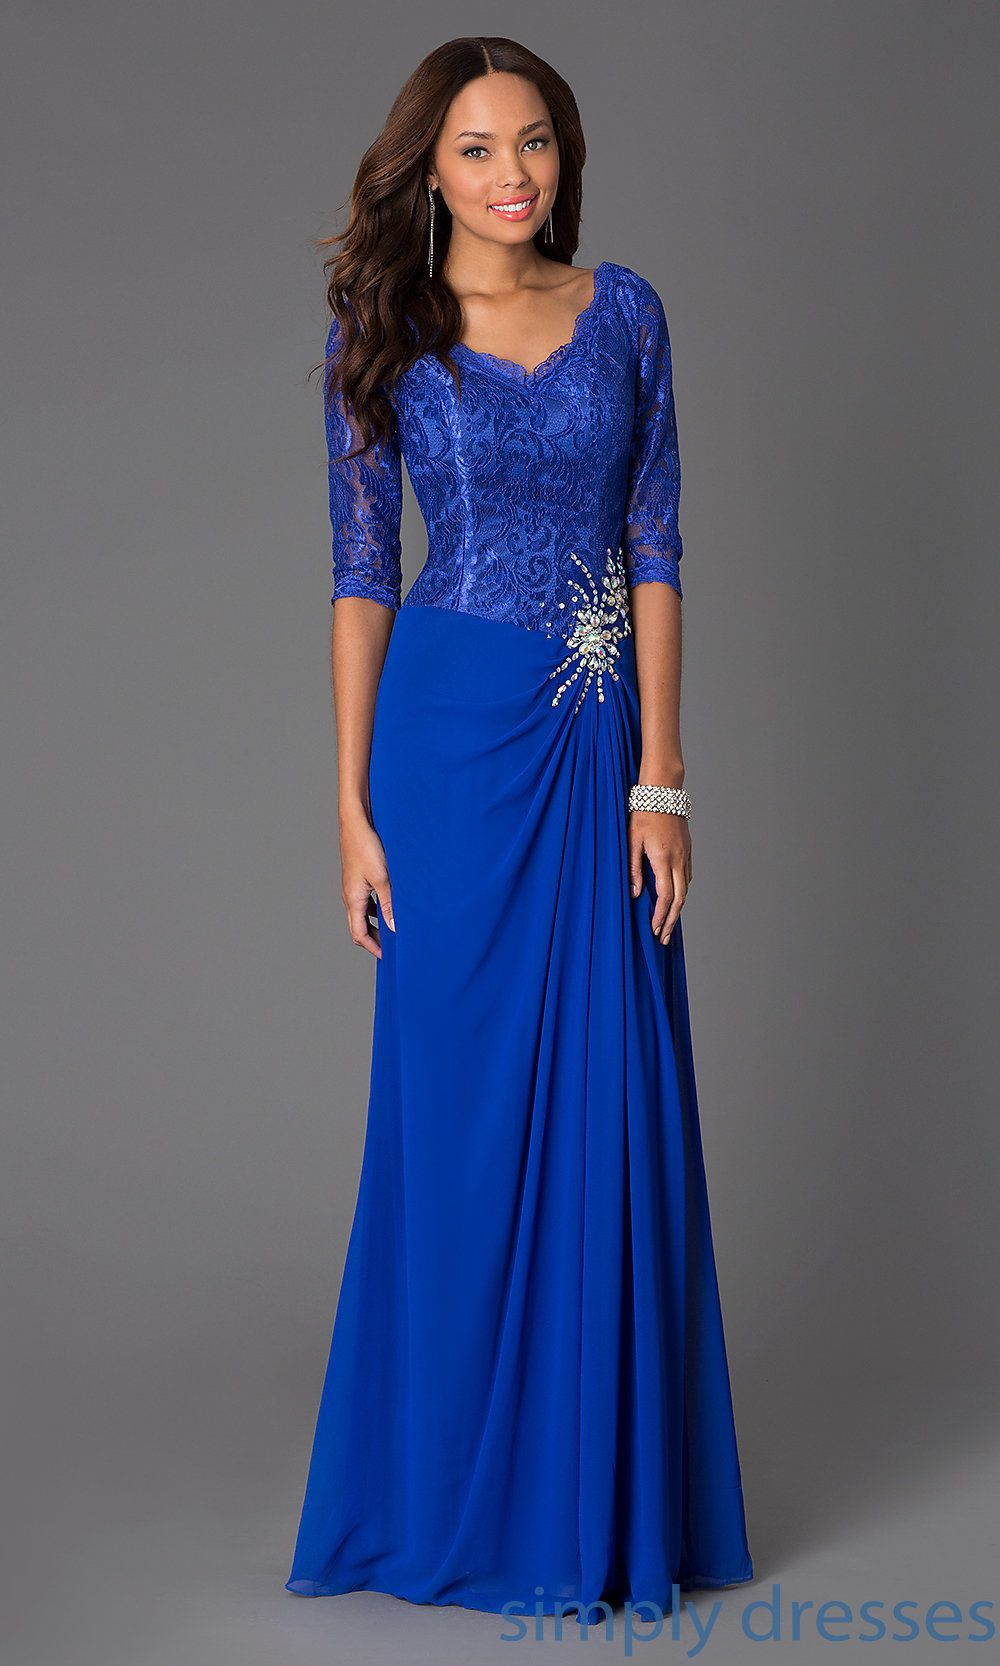 Shop long lace dresses with vnecks and sleeves at simplydresses